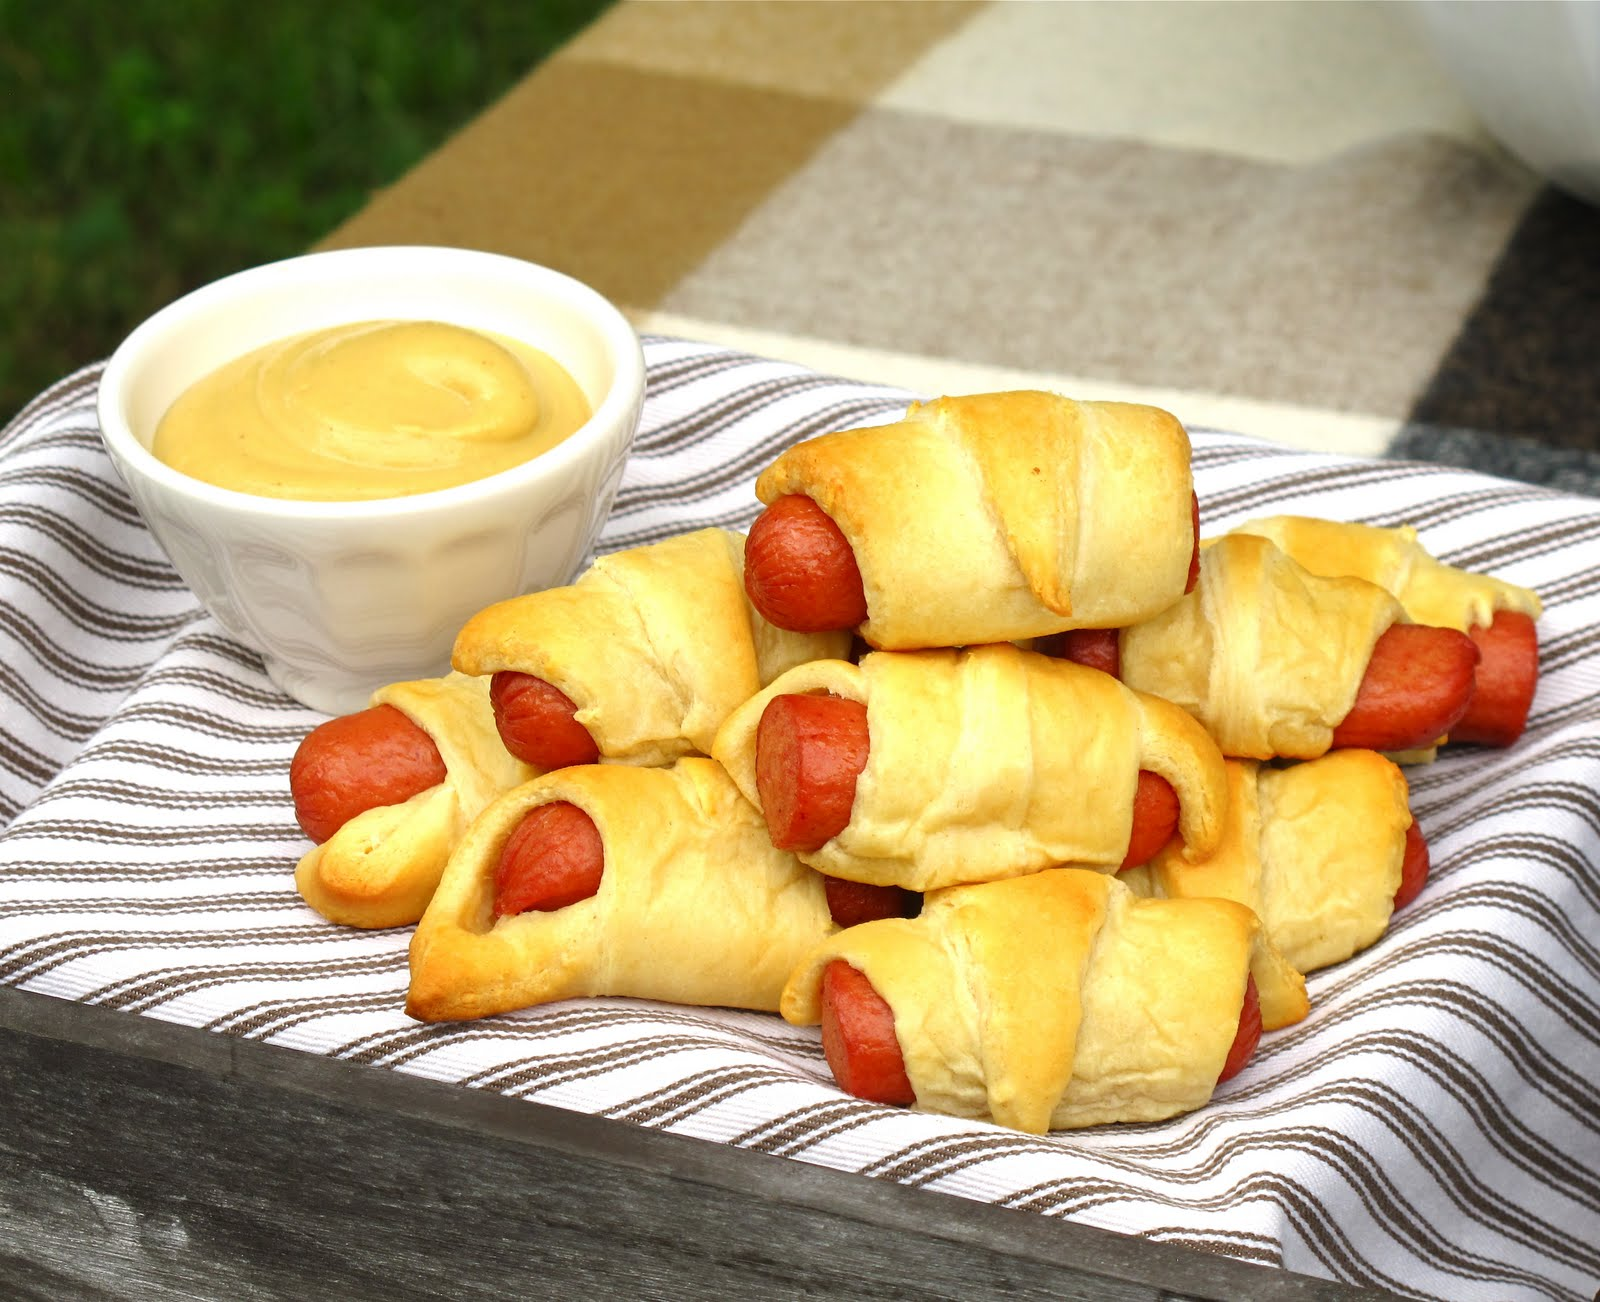 Jenny Steffens Hobick Game Day Tailgate Party Recipes